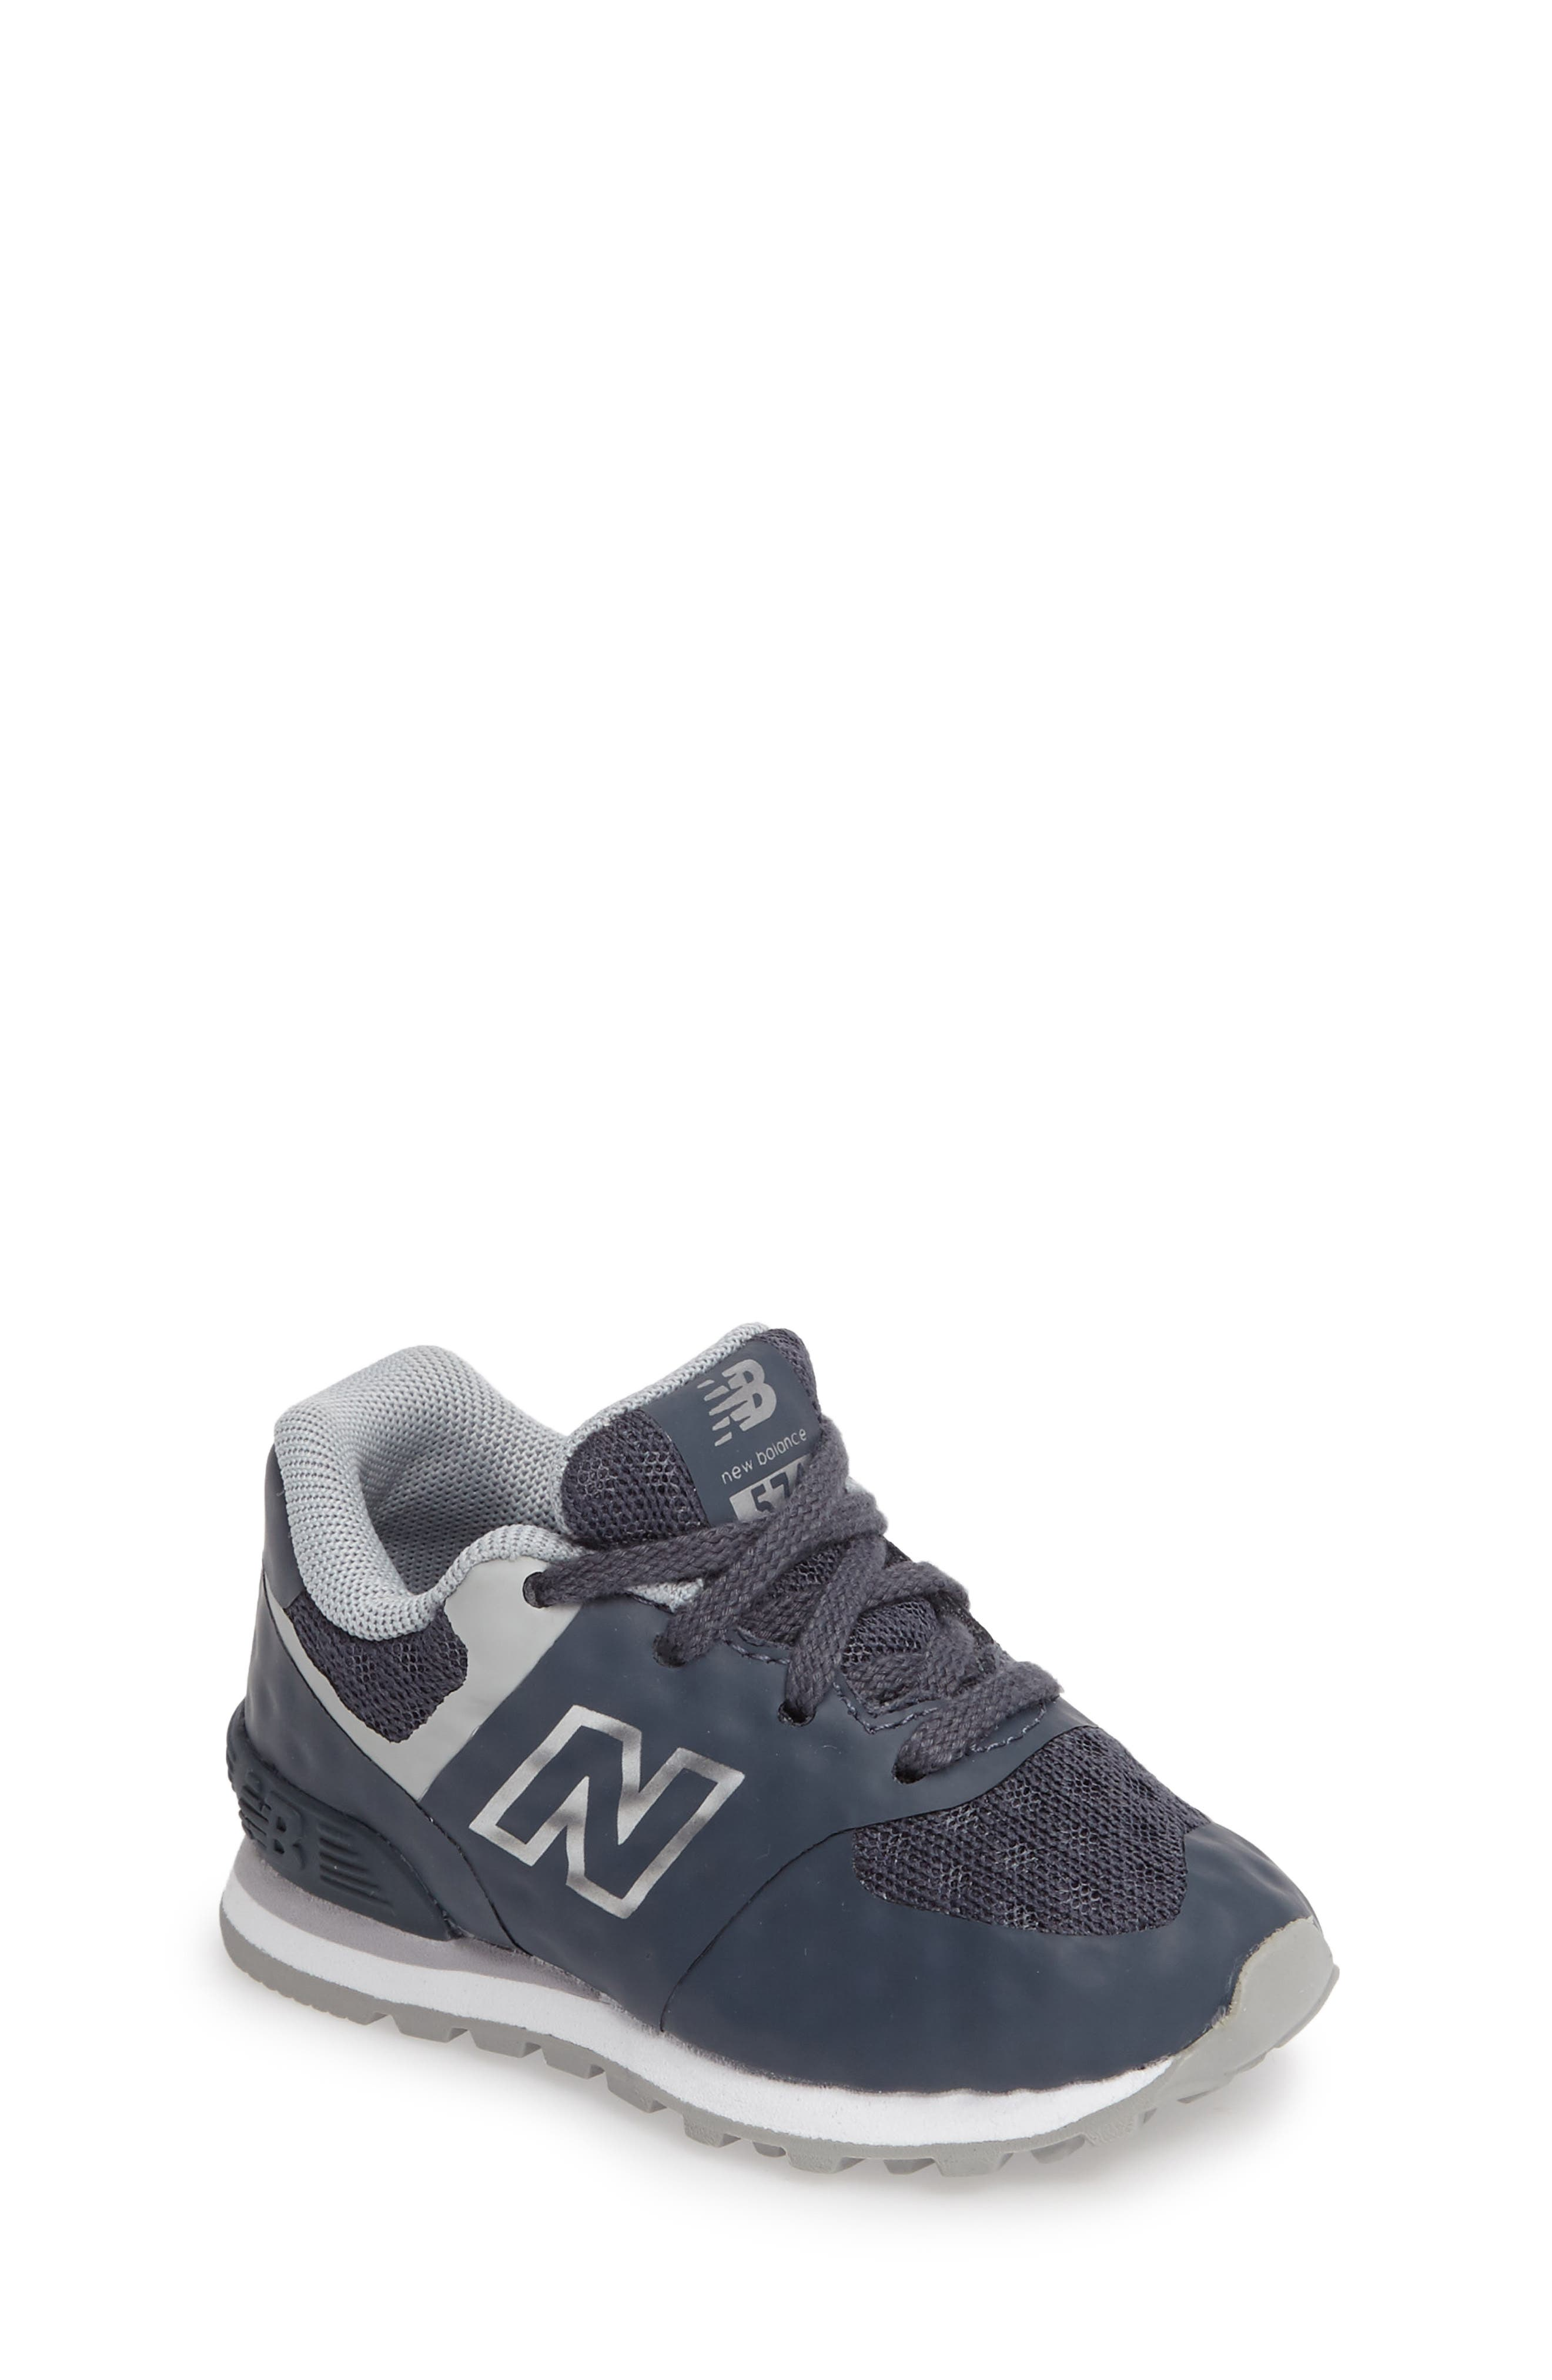 New Balance 574 Kids Only Sneaker (Baby, Walker, Toddler, Little Kid & Big Kid)